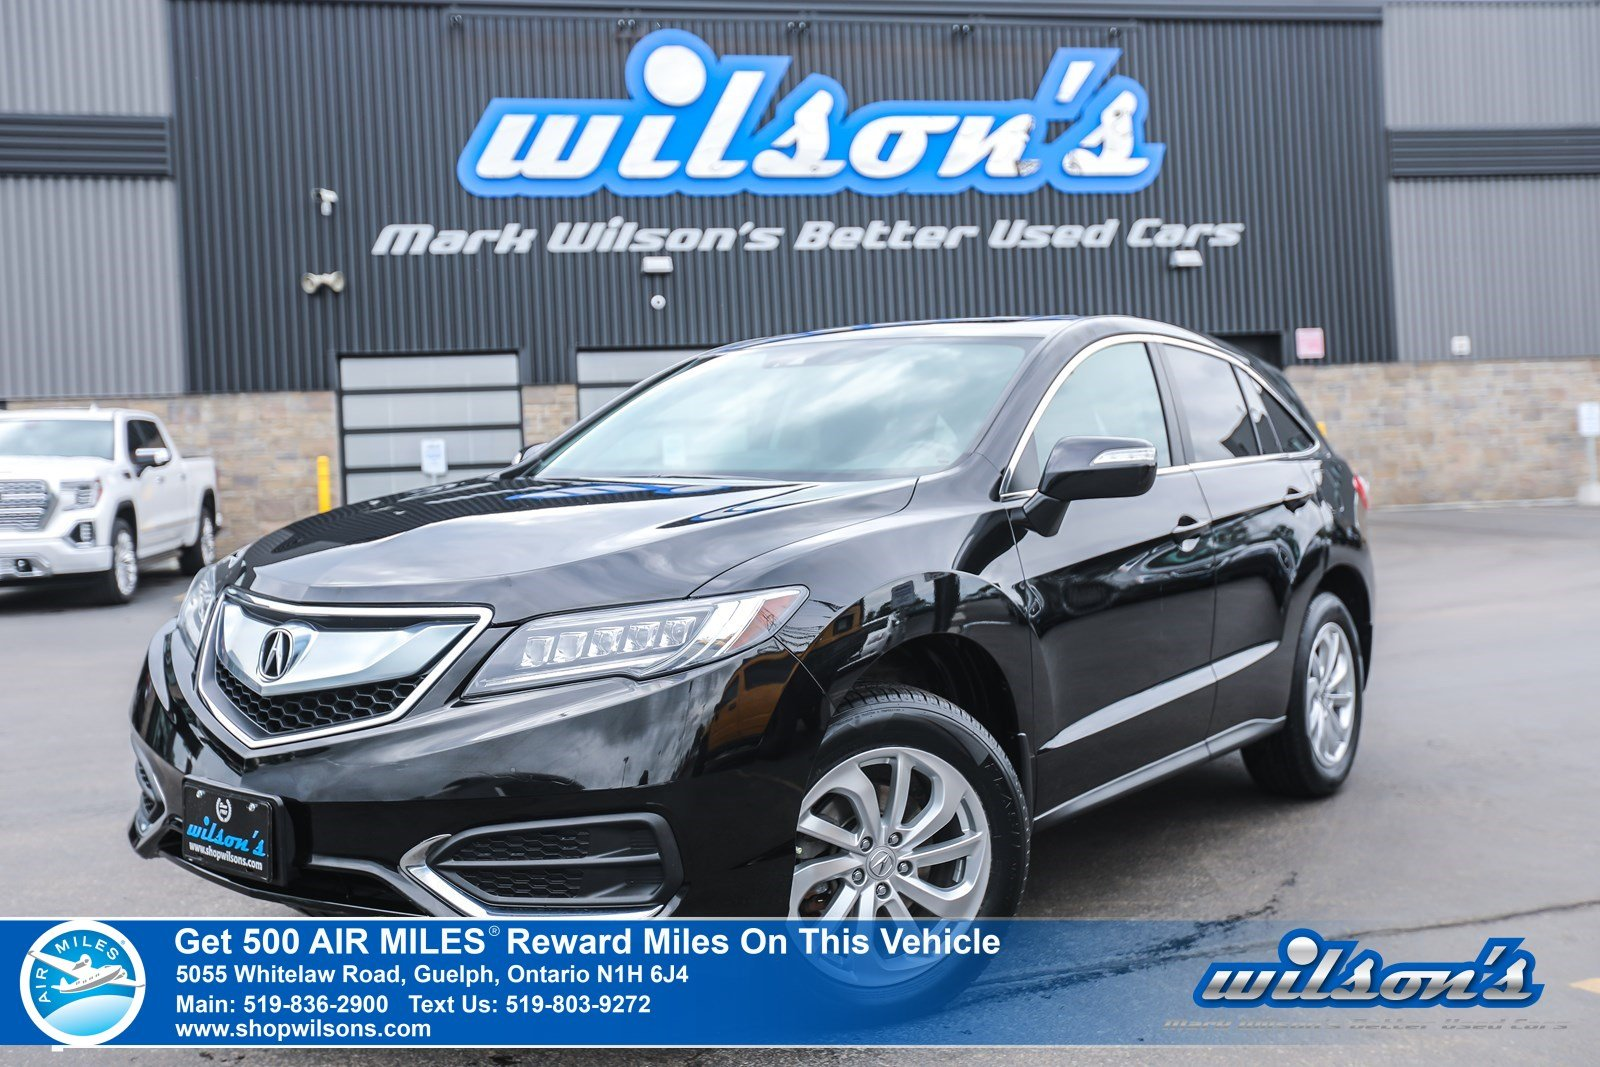 Acura Used Cars >> Certified Pre Owned 2016 Acura Rdx Tech Awd Leather Navigation Sunroof Memory Seat Heated Seats Rear Camera And More